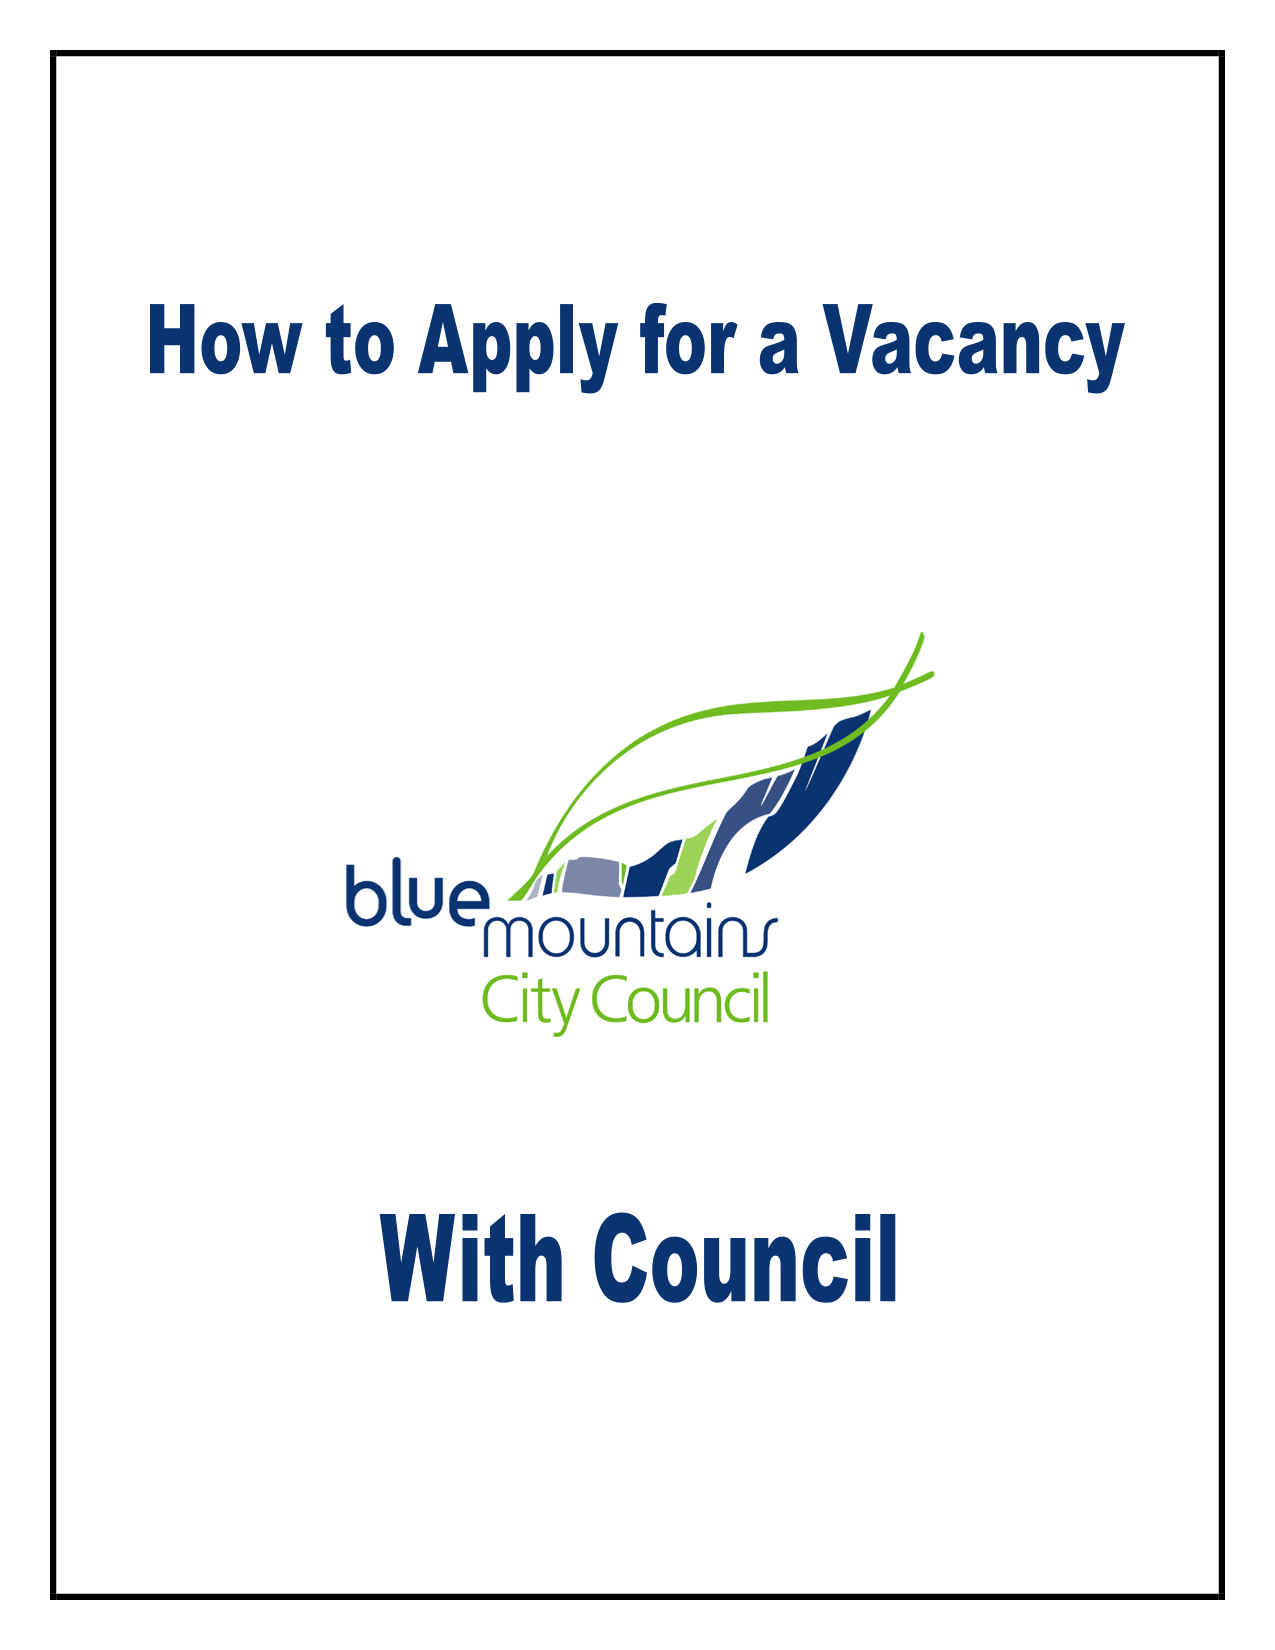 How to Apply for a Vacancy